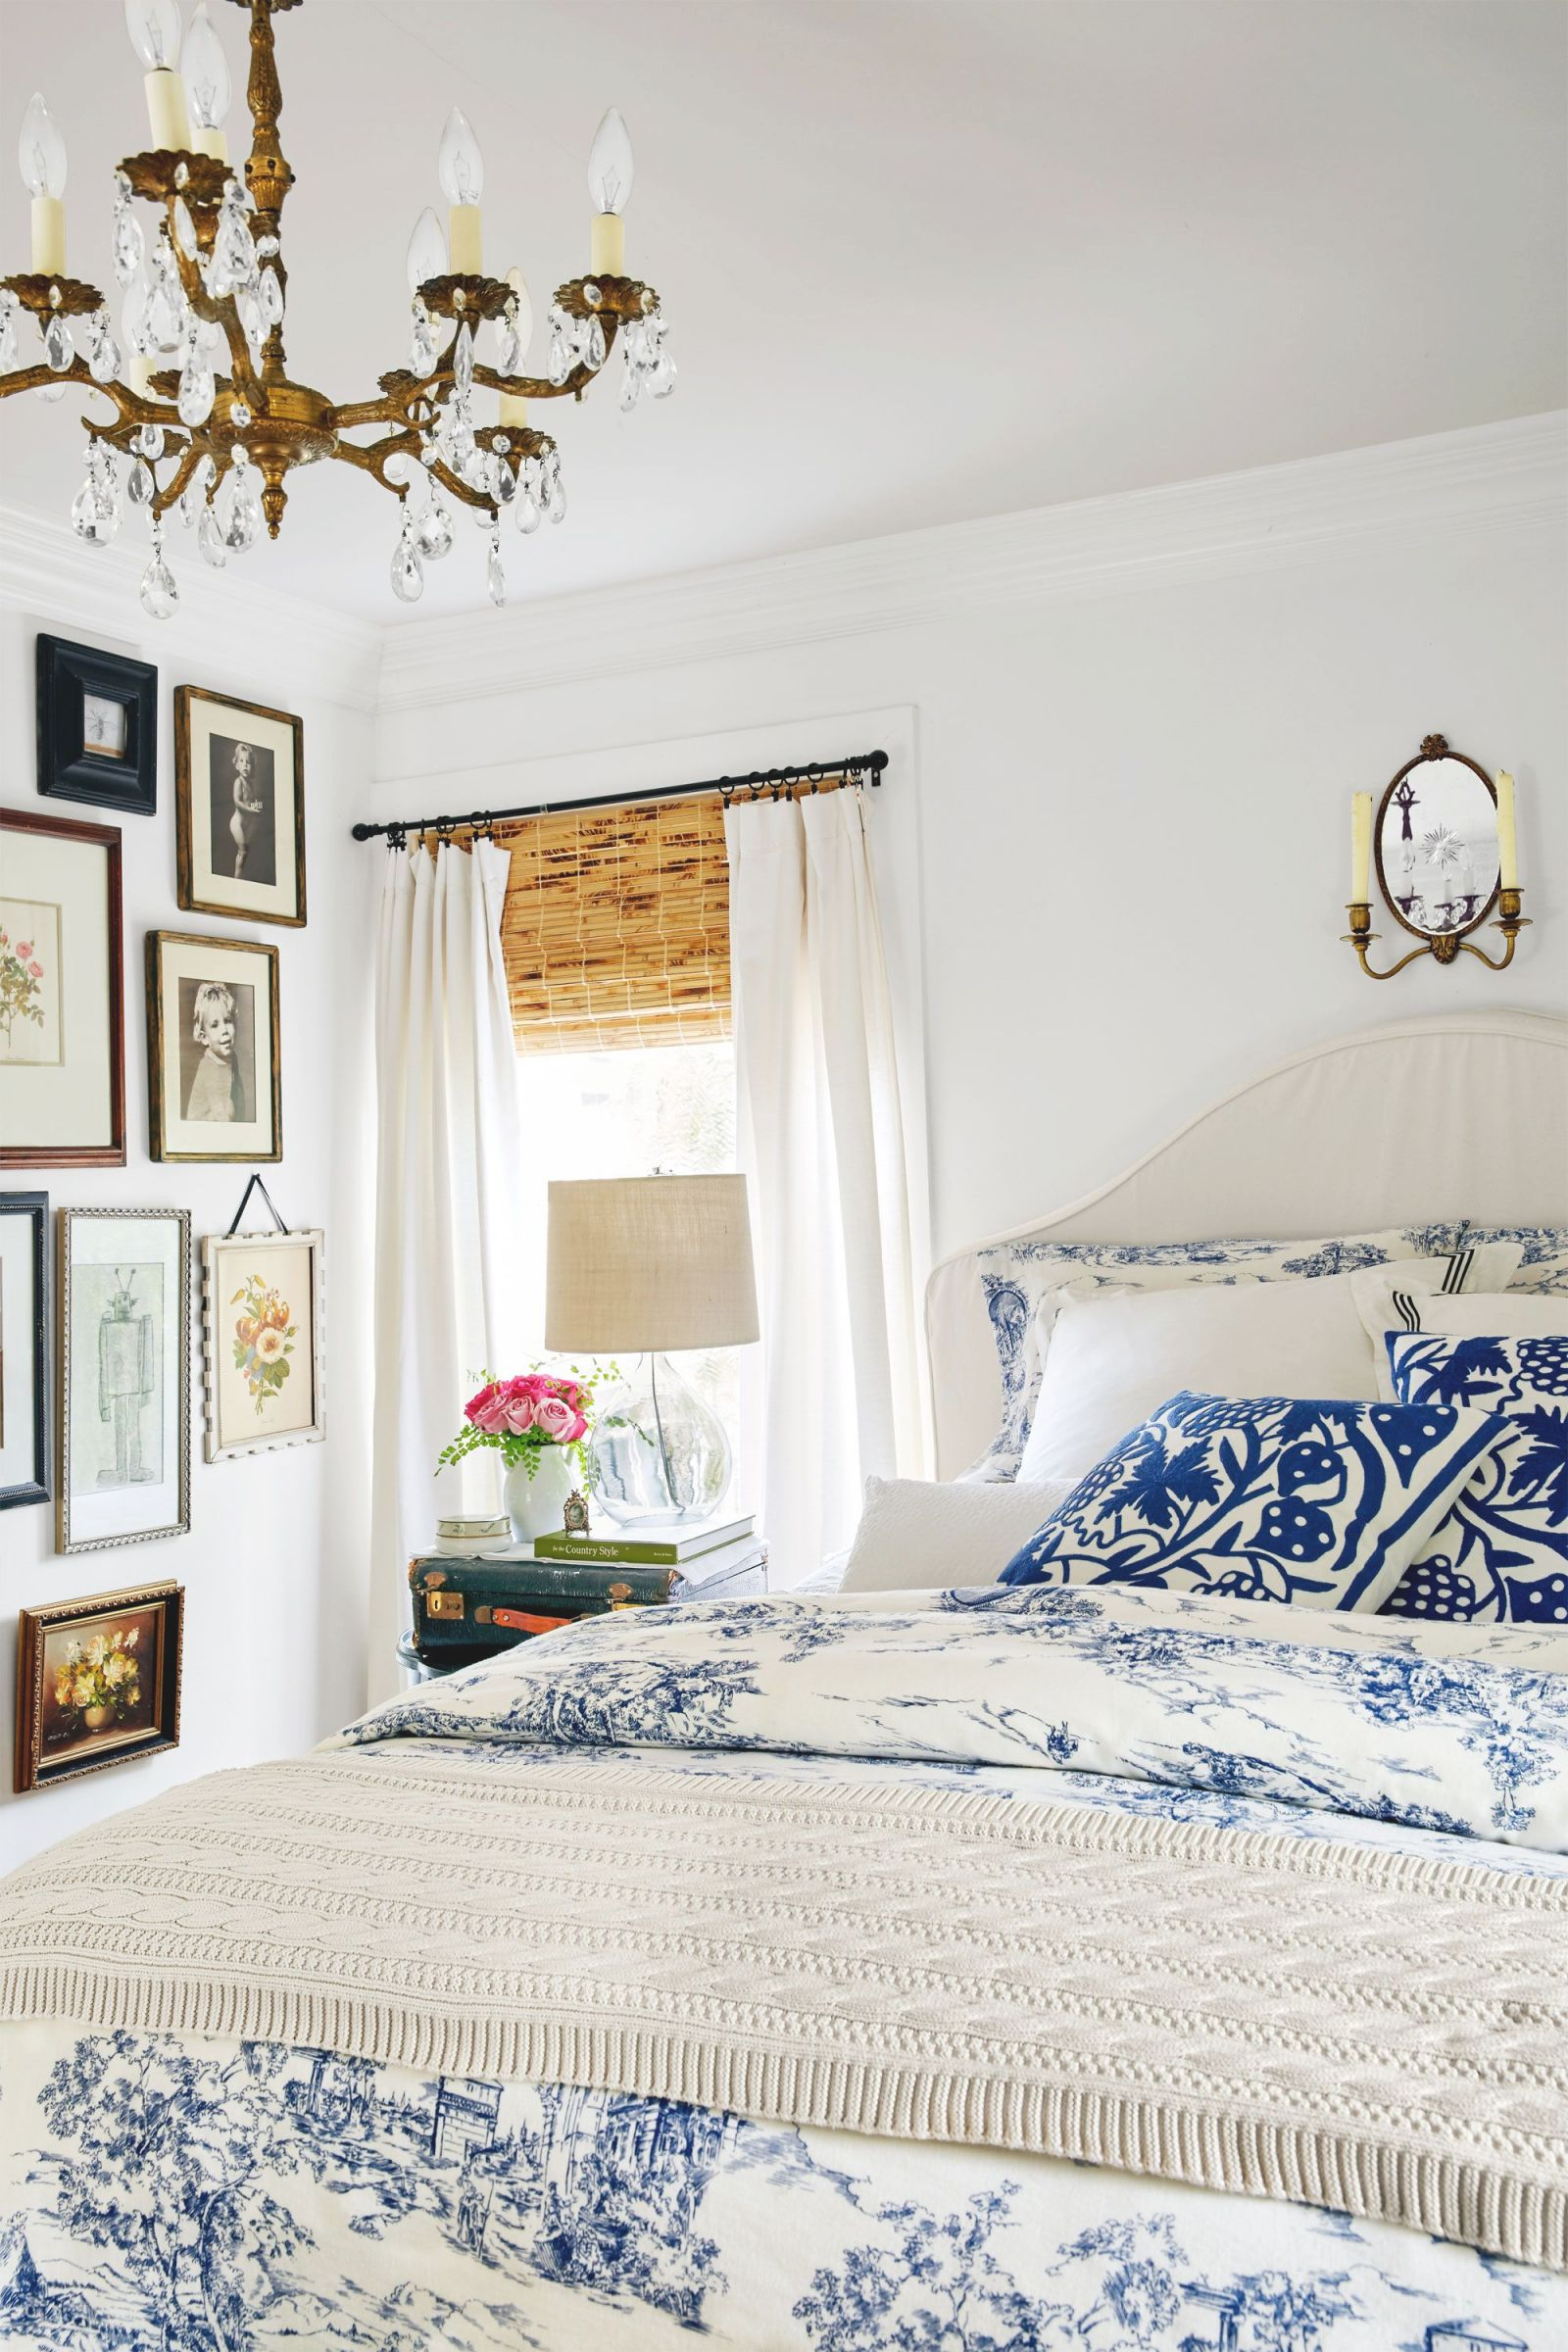 100+ Bedroom Decorating Ideas In 2020 - Designs For in Elegant French Bedroom Decorating Ideas